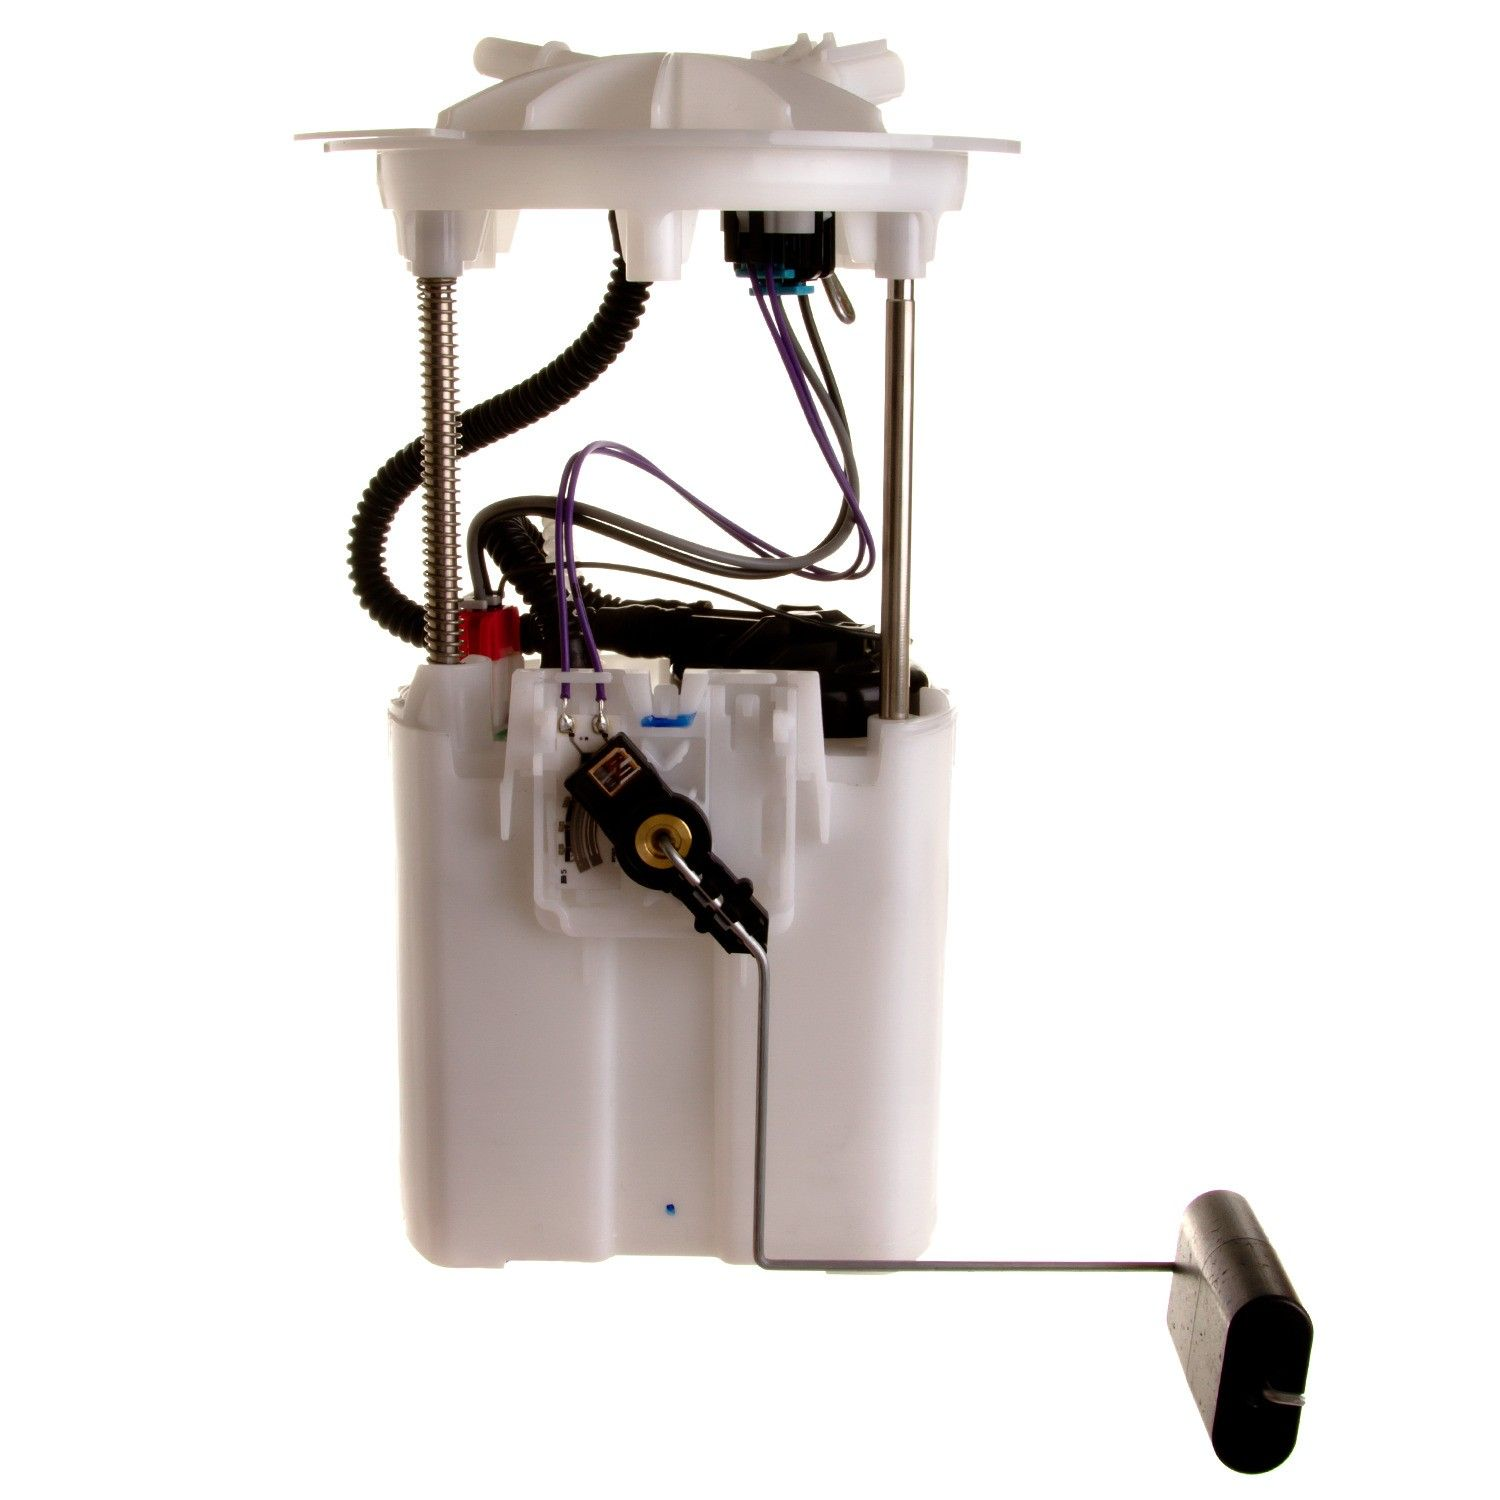 Chrysler Pt Cruiser Fuel Pump Module Assembly Replacement Airtex 2007 Chysler Filter 2005 4 Cyl 24l Delphi Fg0928 Strainer Is Inside The Once New Has Been Installed